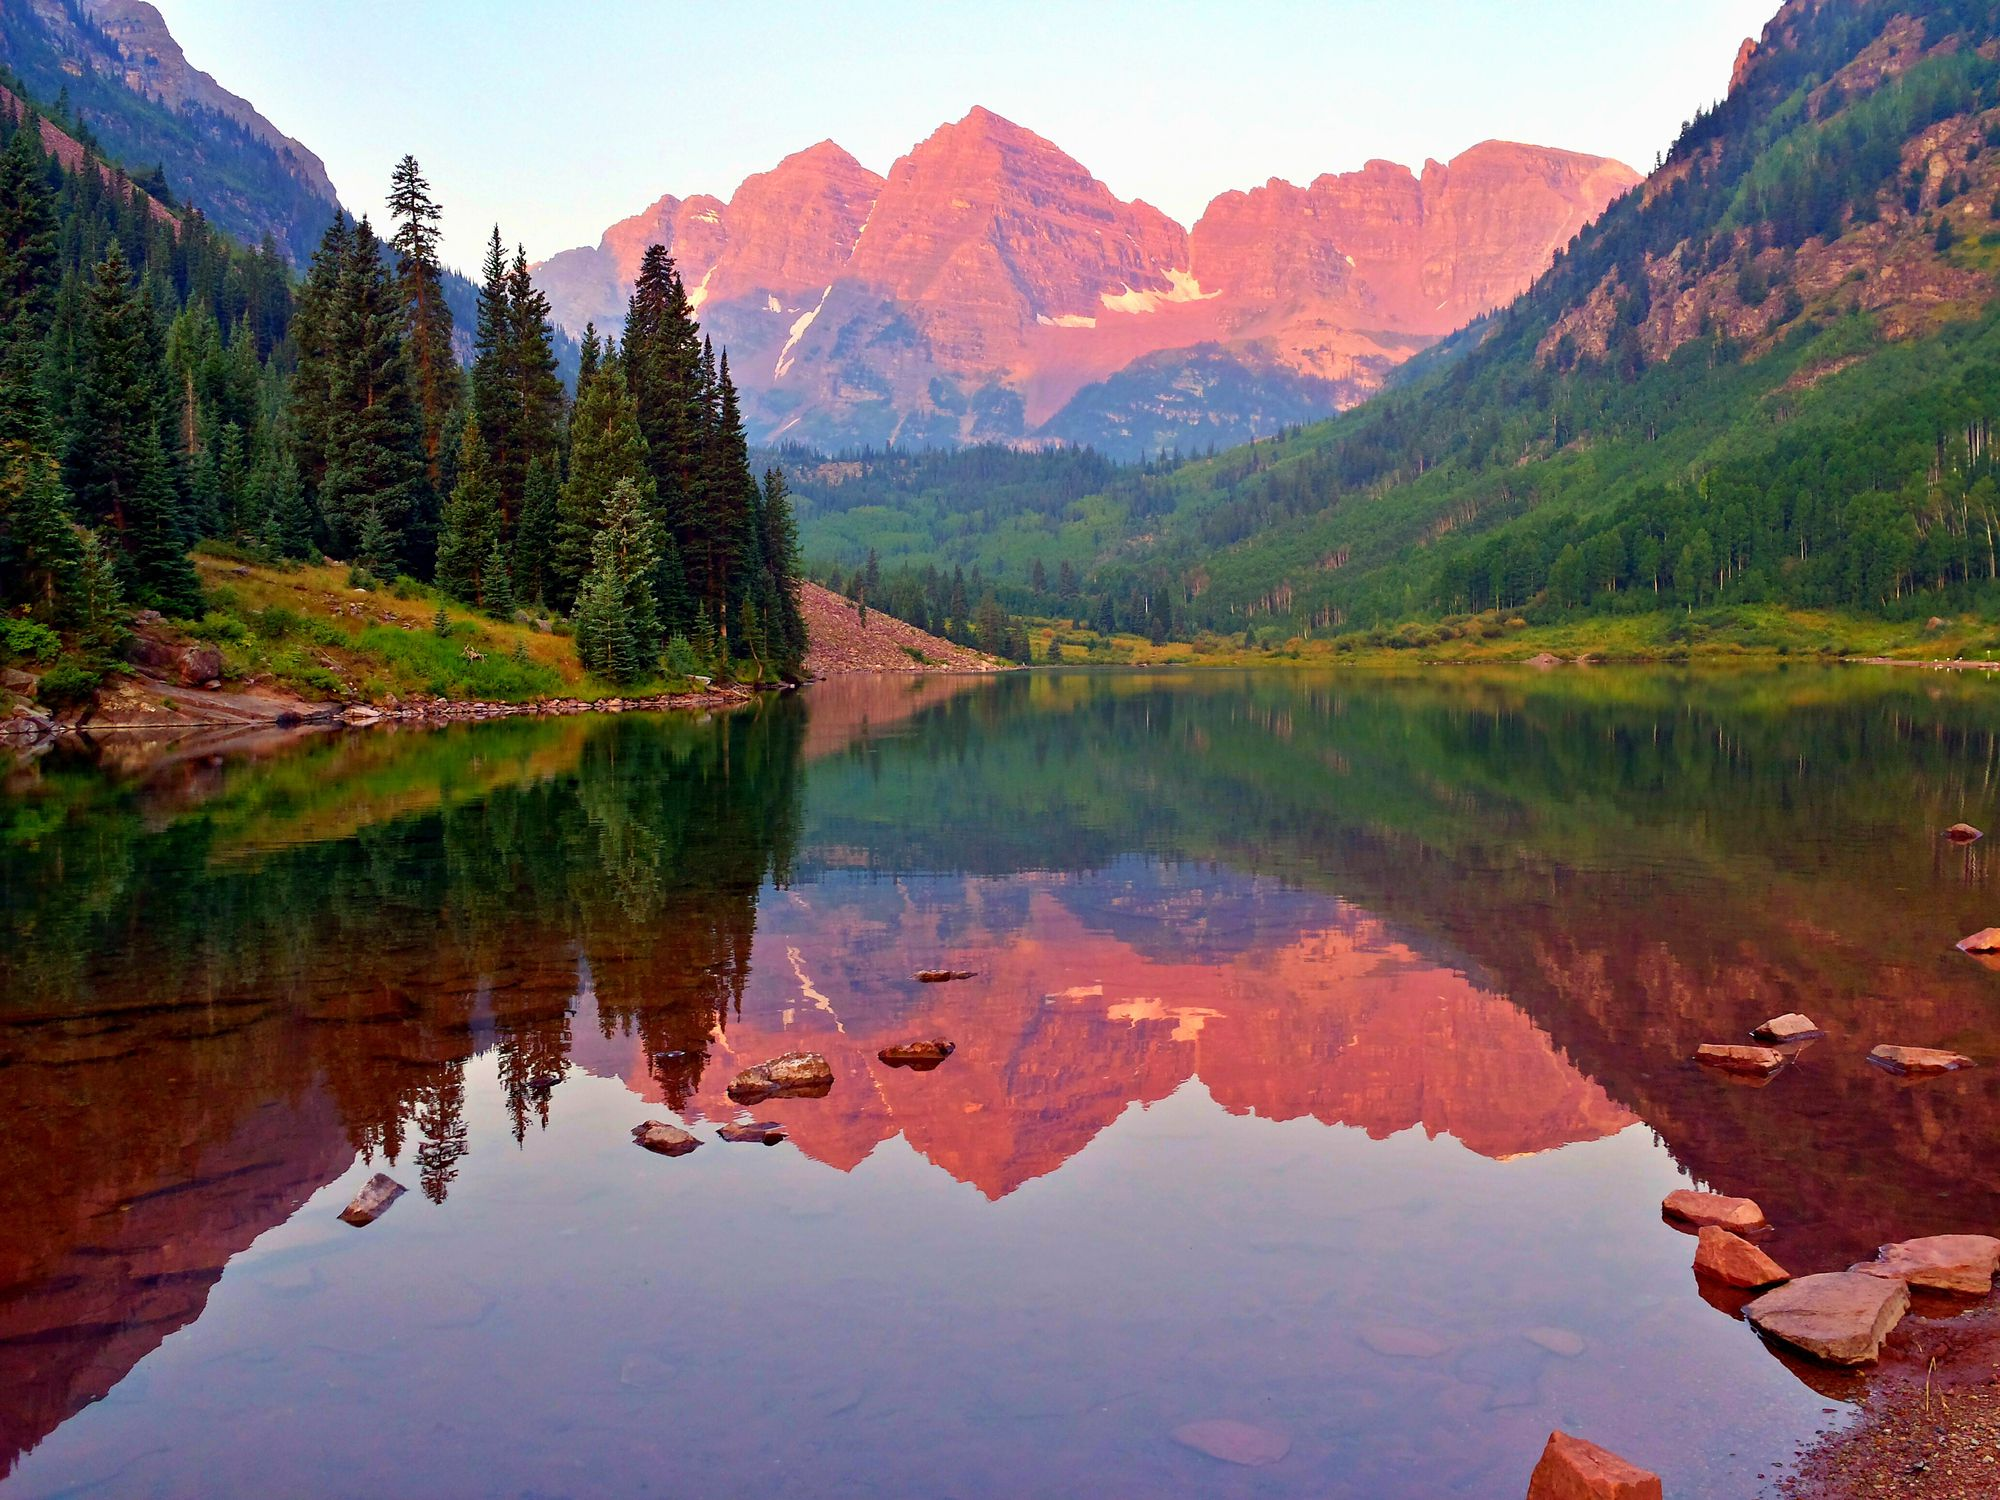 colorado camping places camp spots destinations tripsavvy travel june state visit